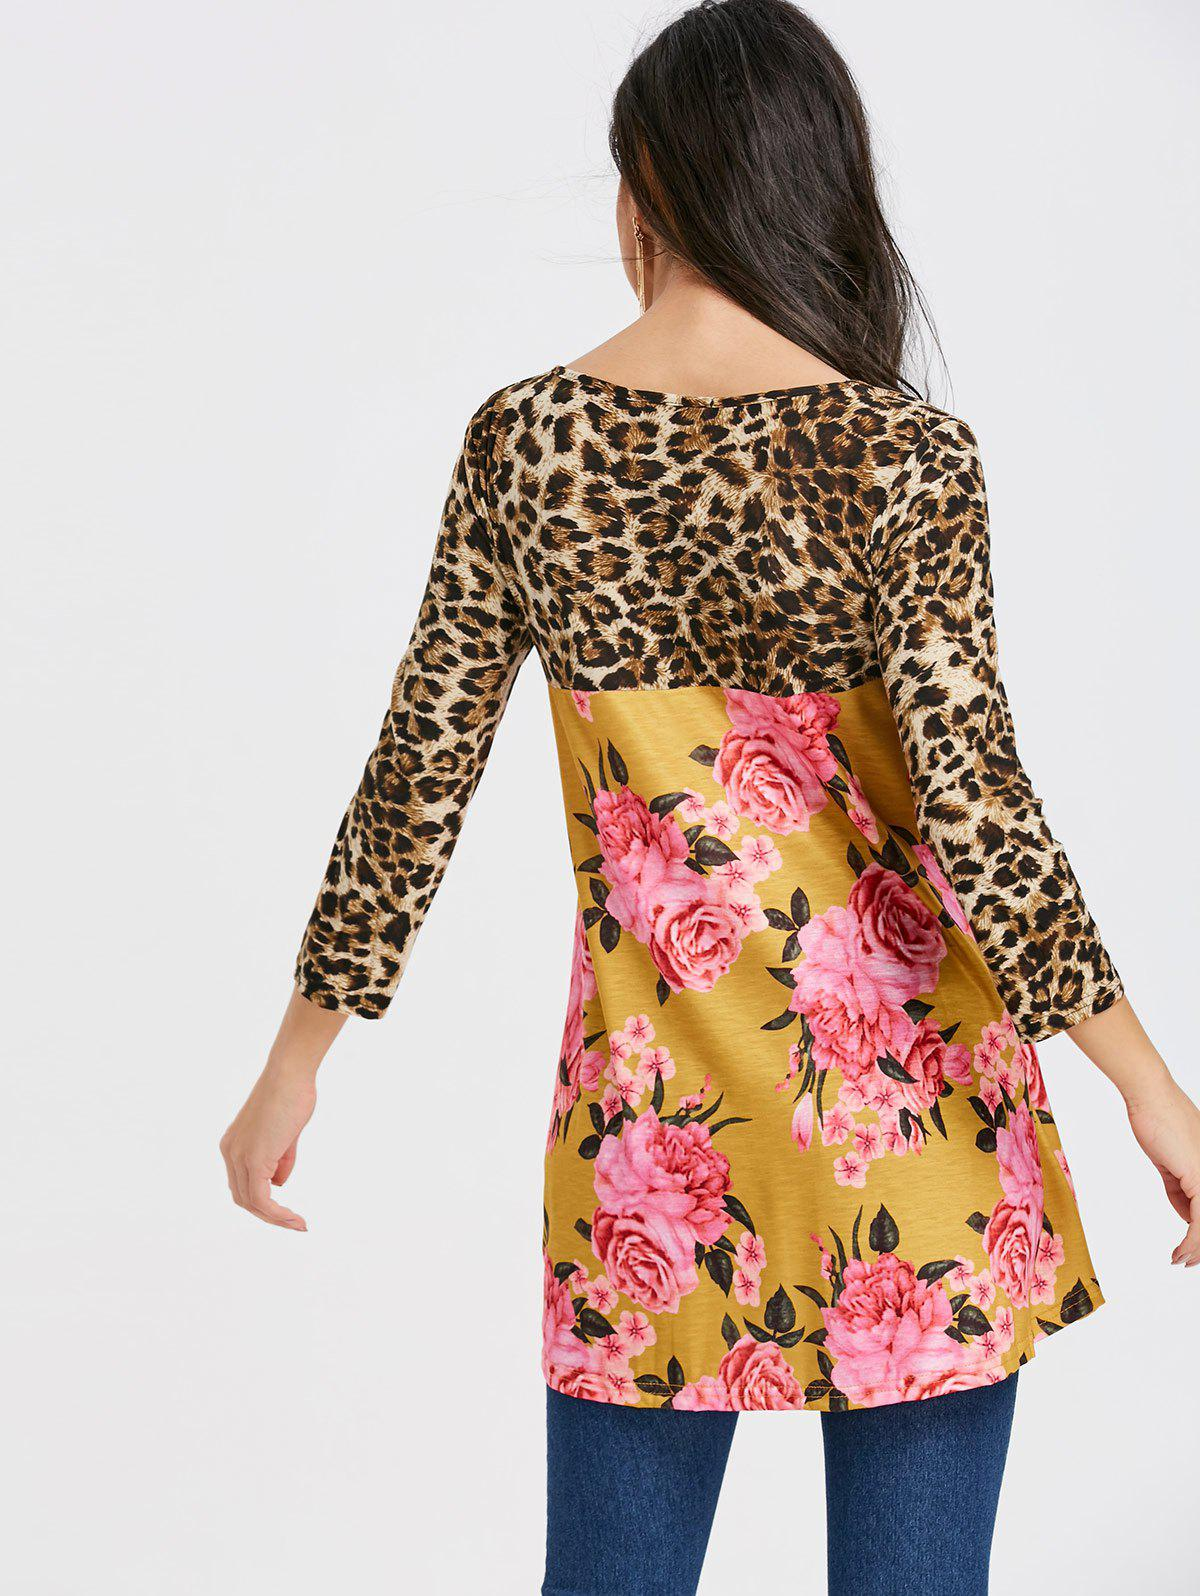 Floral and Leopard Printed Tunic T-shirt - YELLOW XL